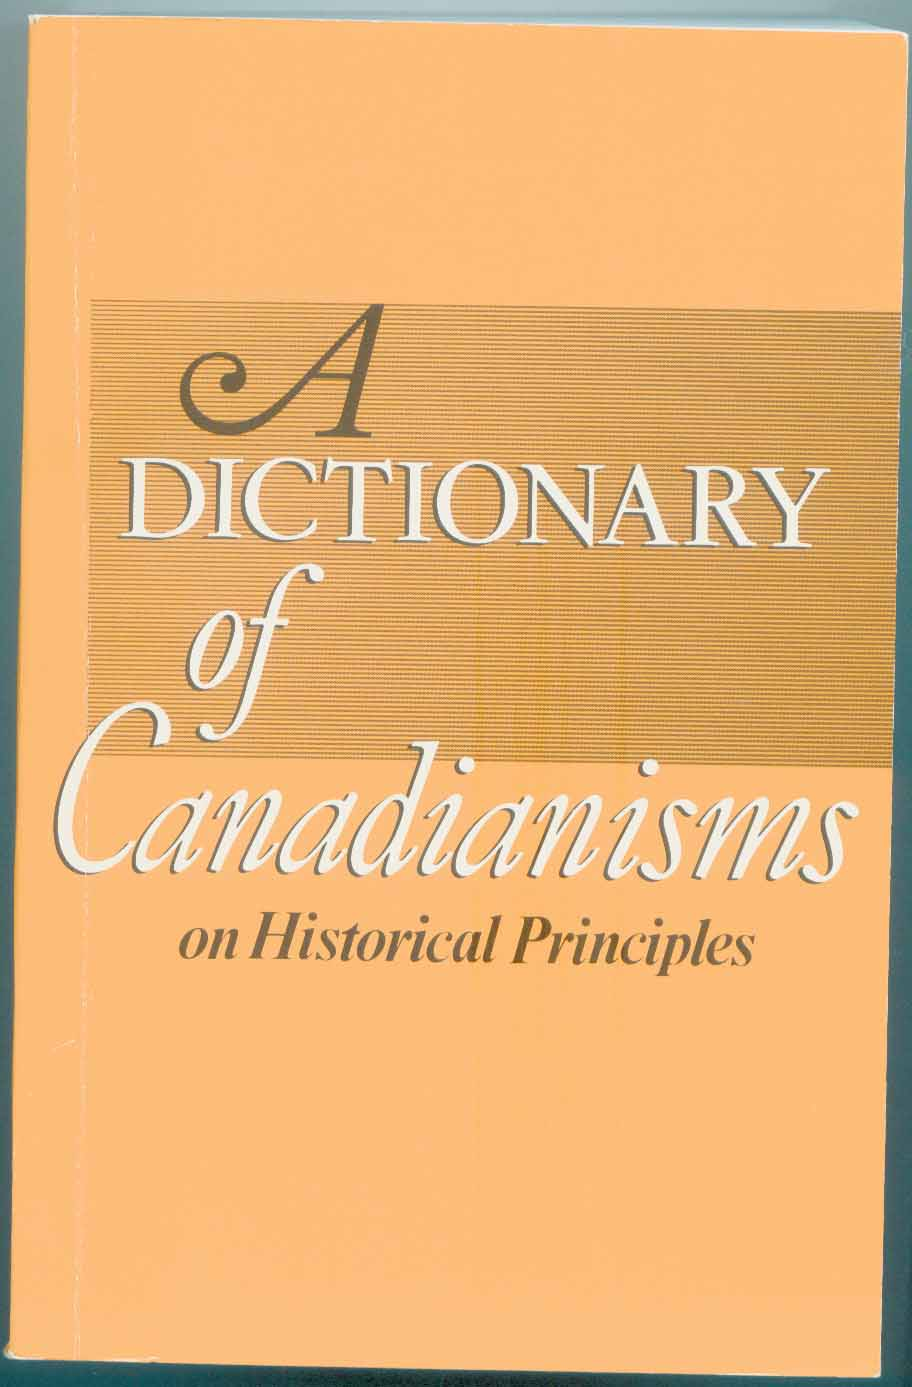 Canadians speak differently! The Dictionary of Canadianisms proves it!